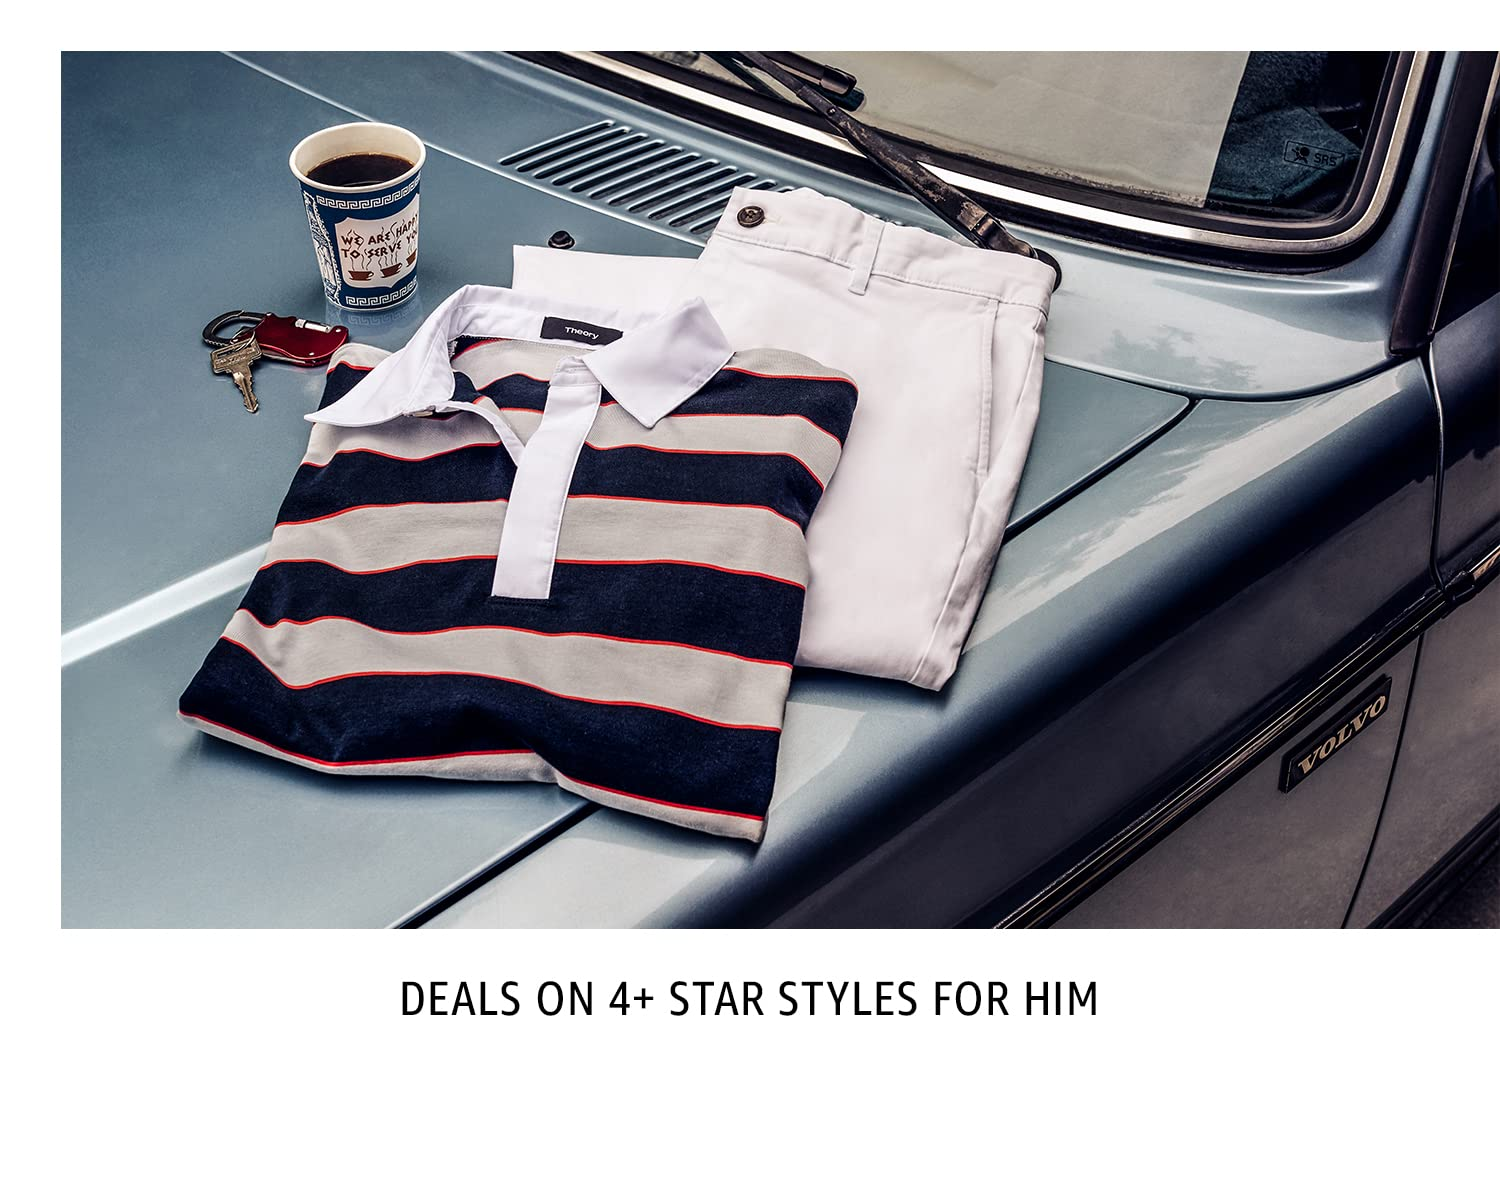 Deals on 4+ star styles for him